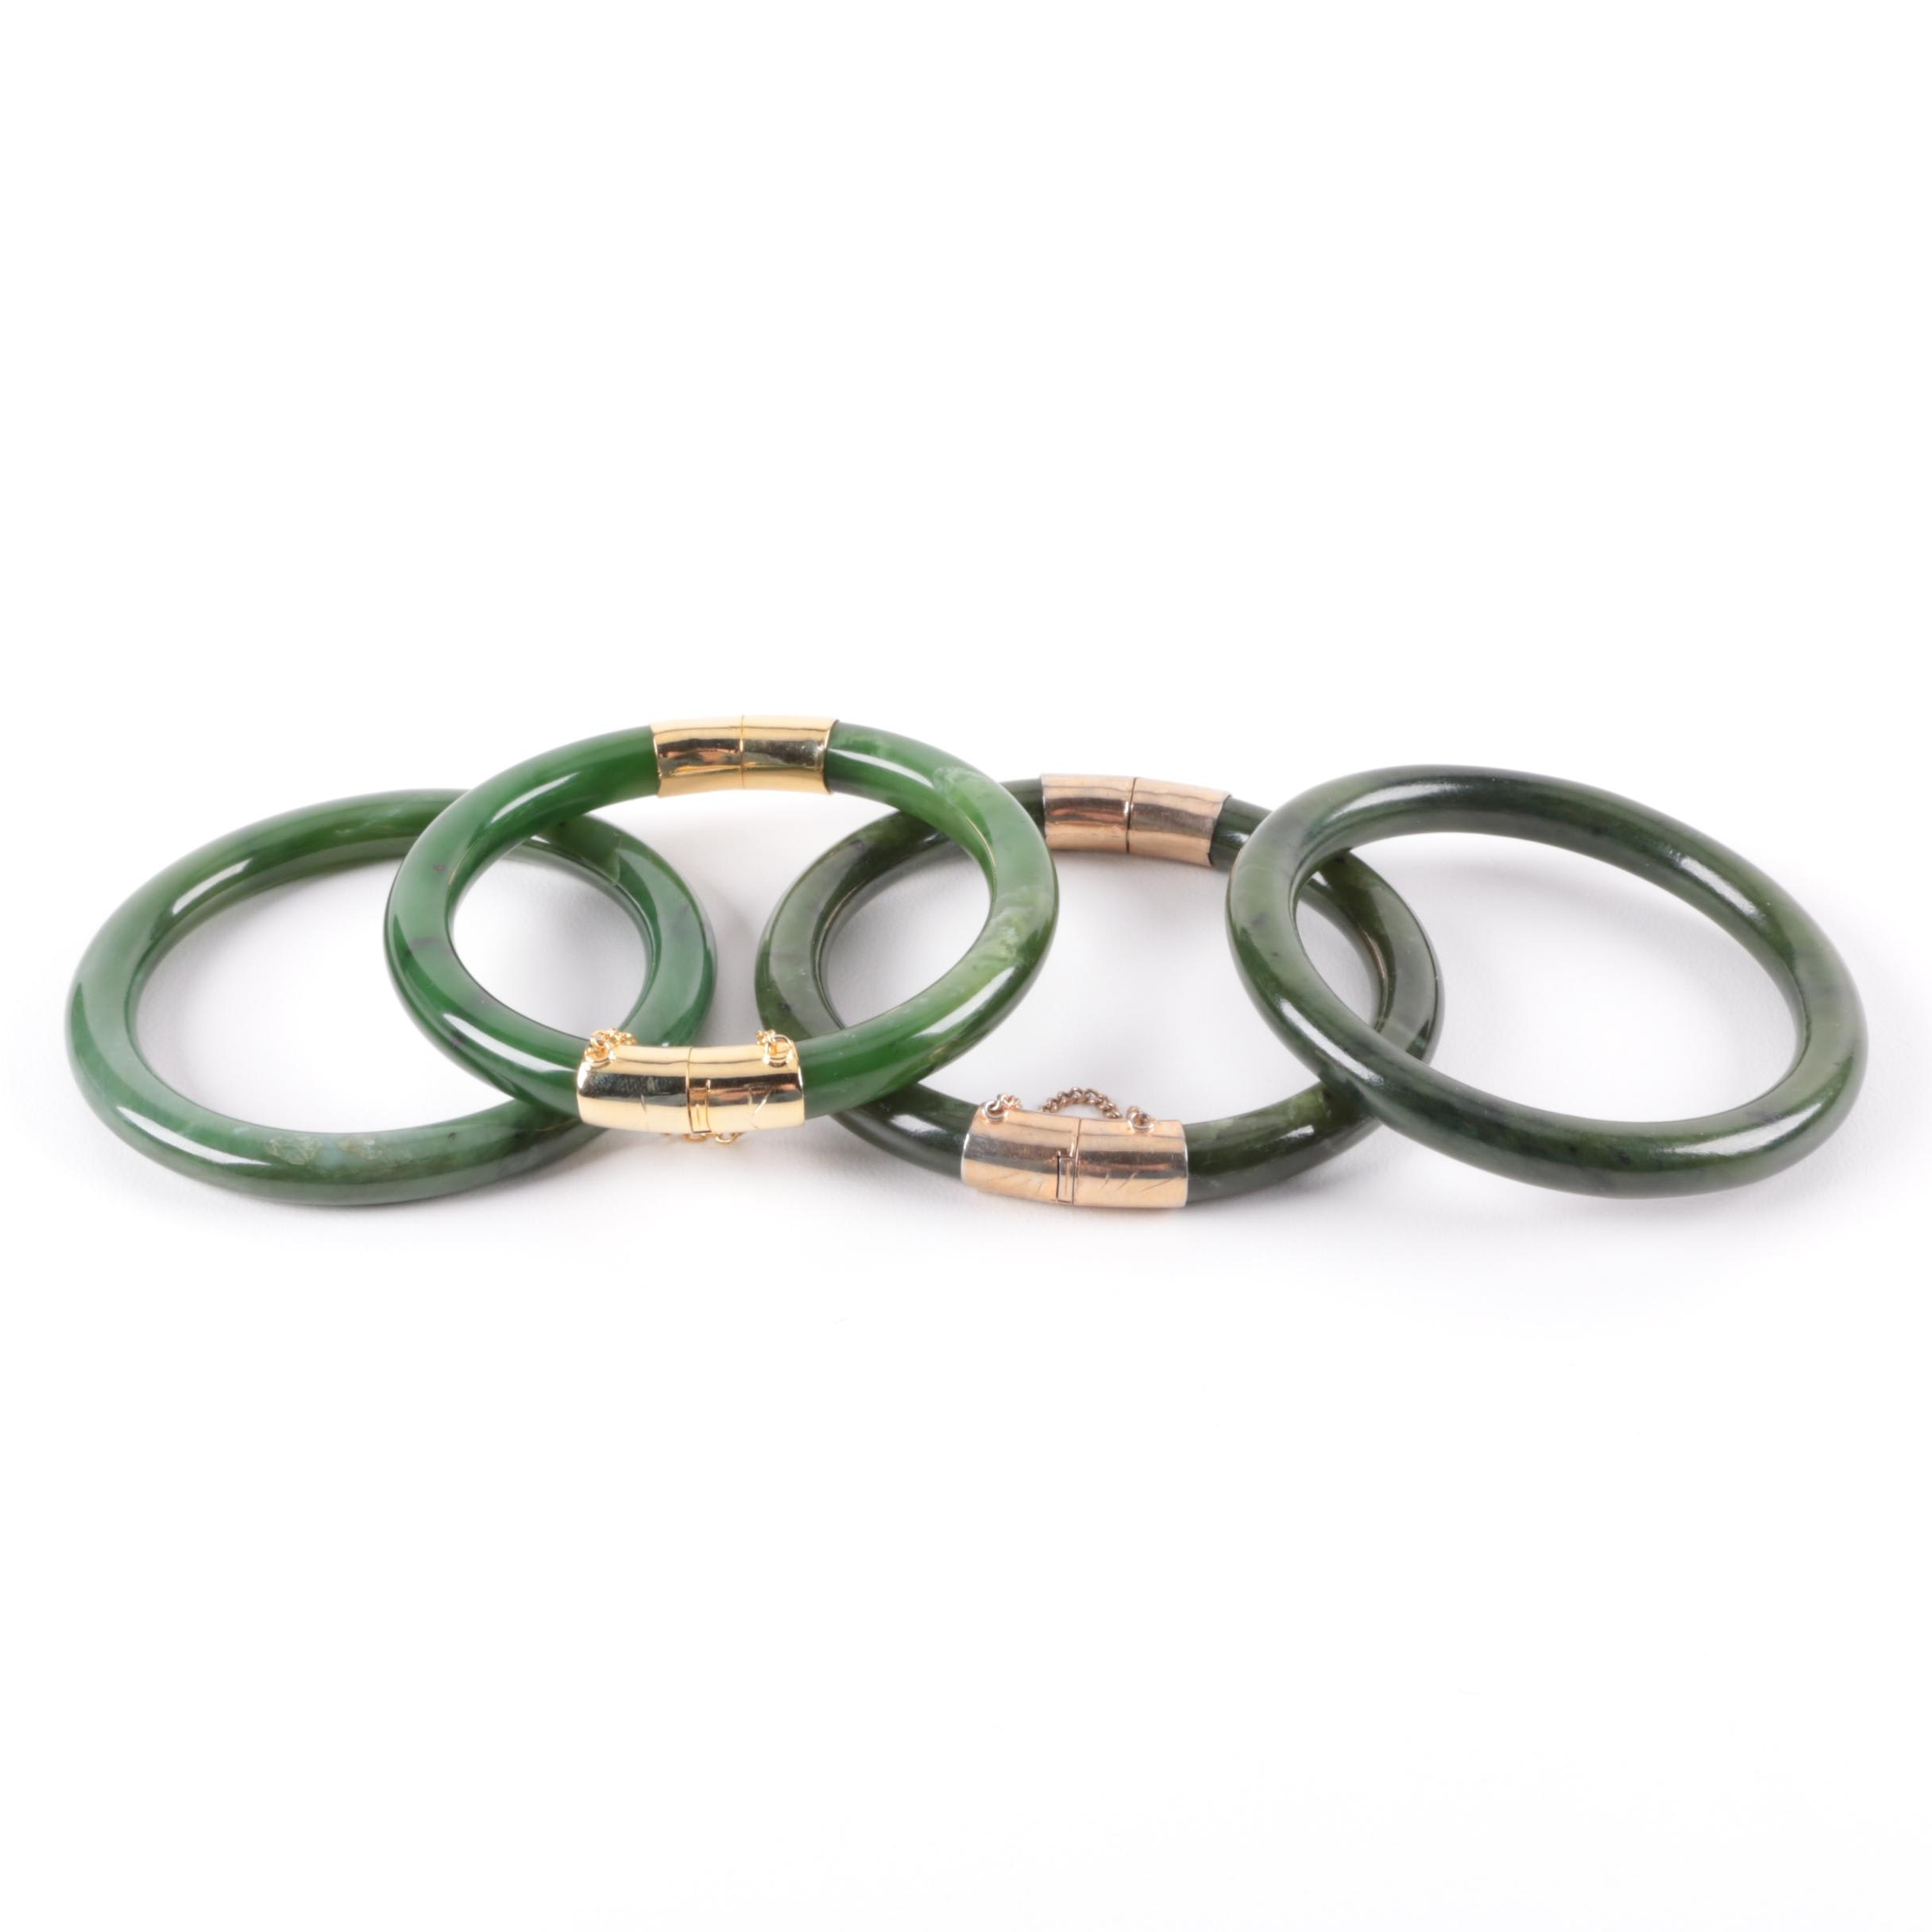 Selection of Gold Tone Nephrite Bangle Bracelets